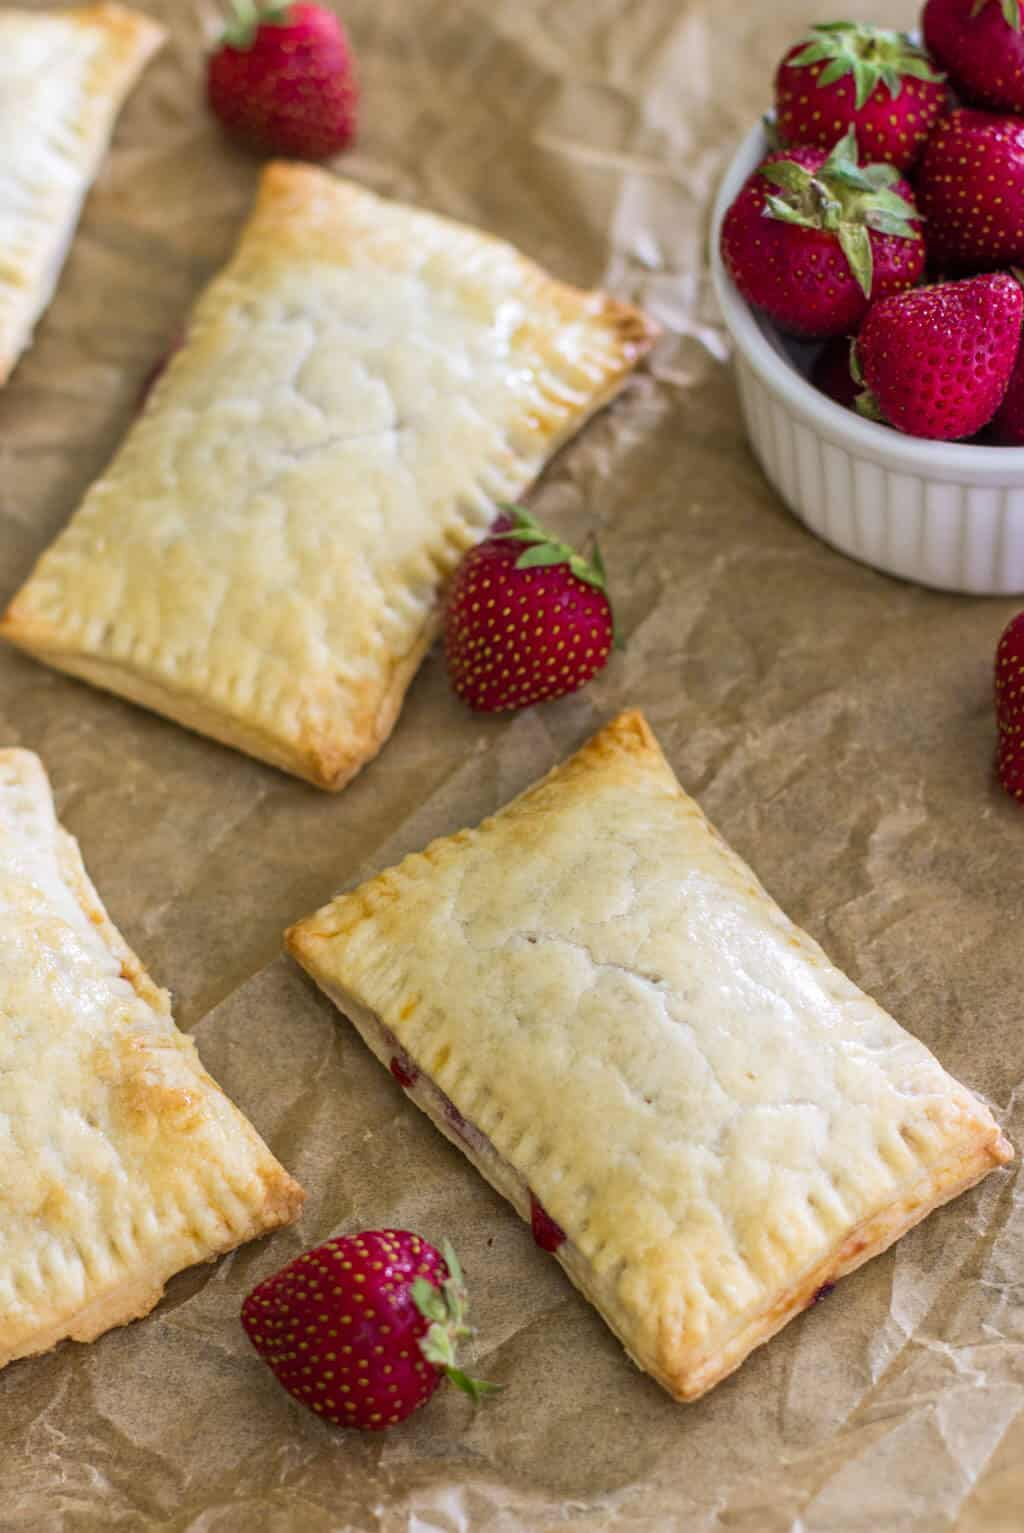 These homemade strawberry pop-tarts are made with an easy, flaky ...